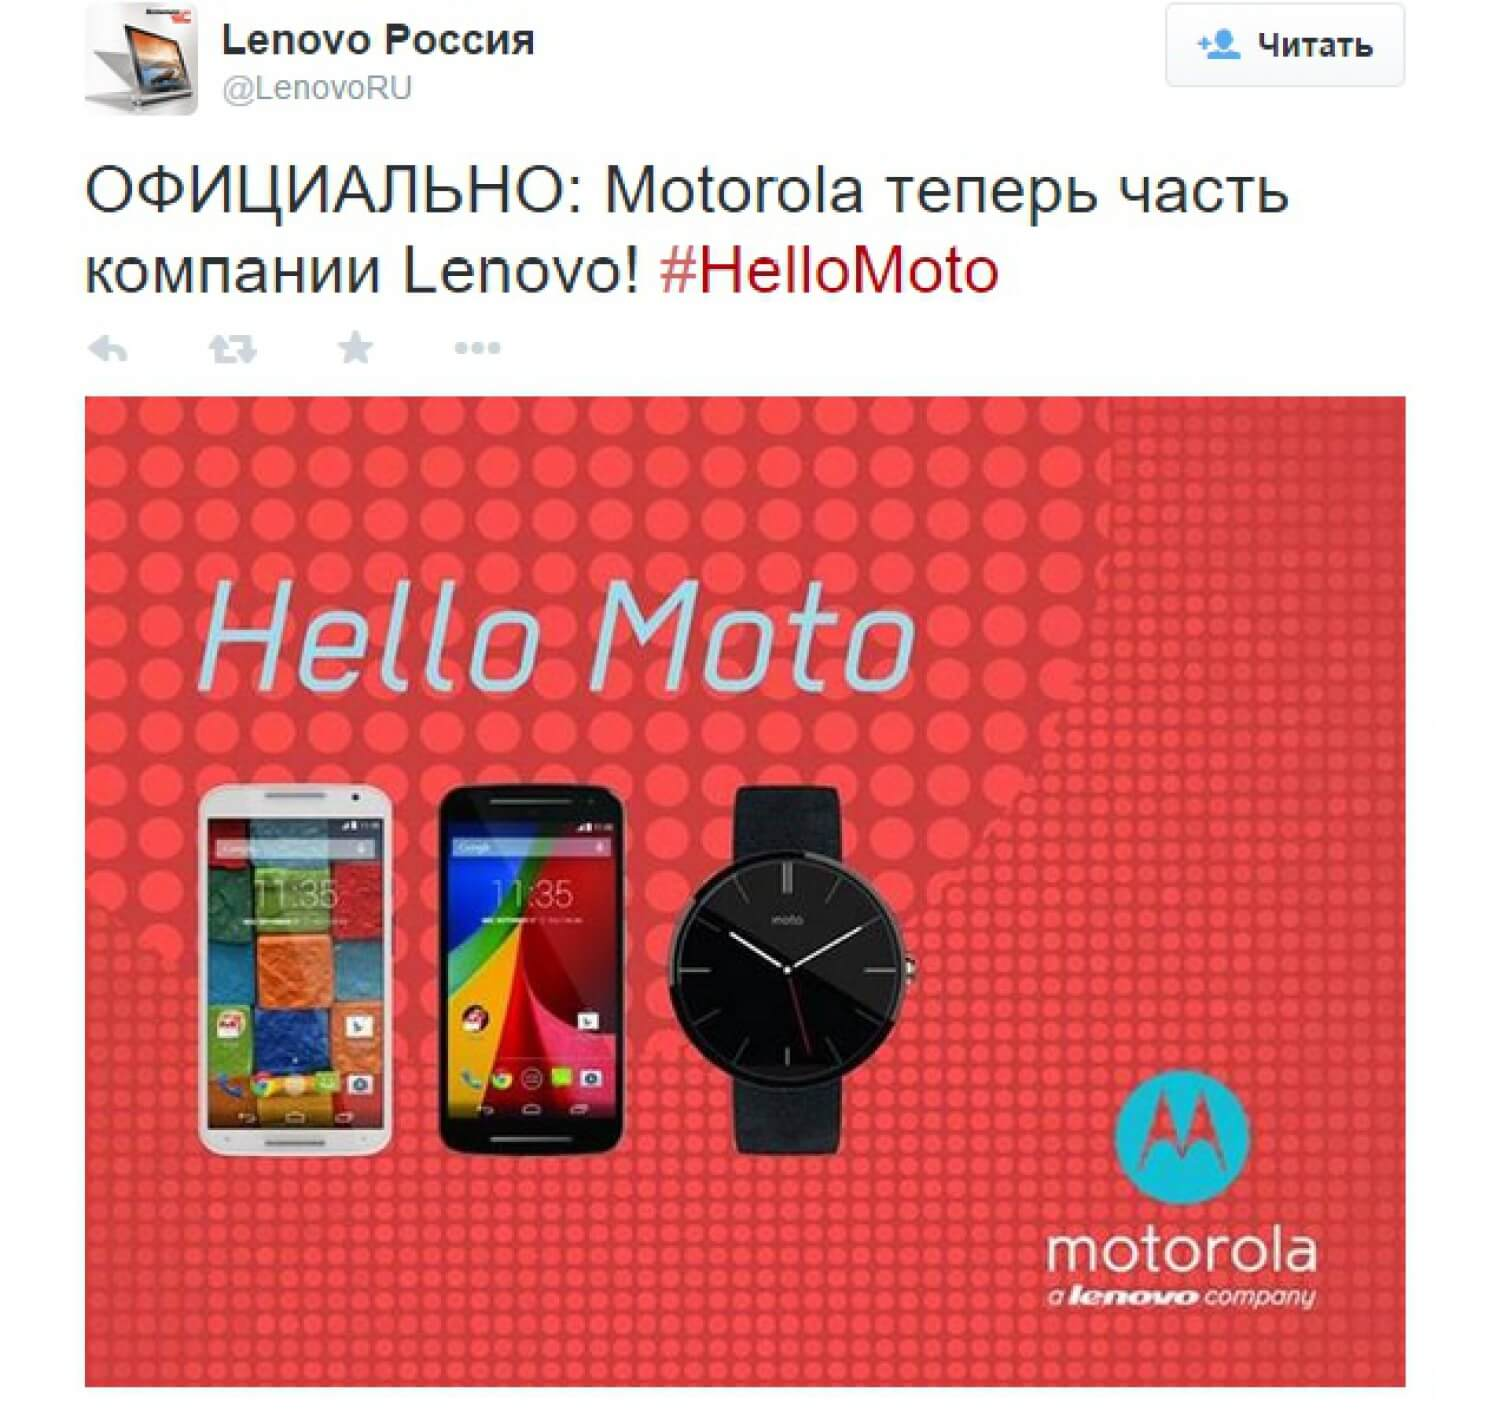 Lenovo and Motorola